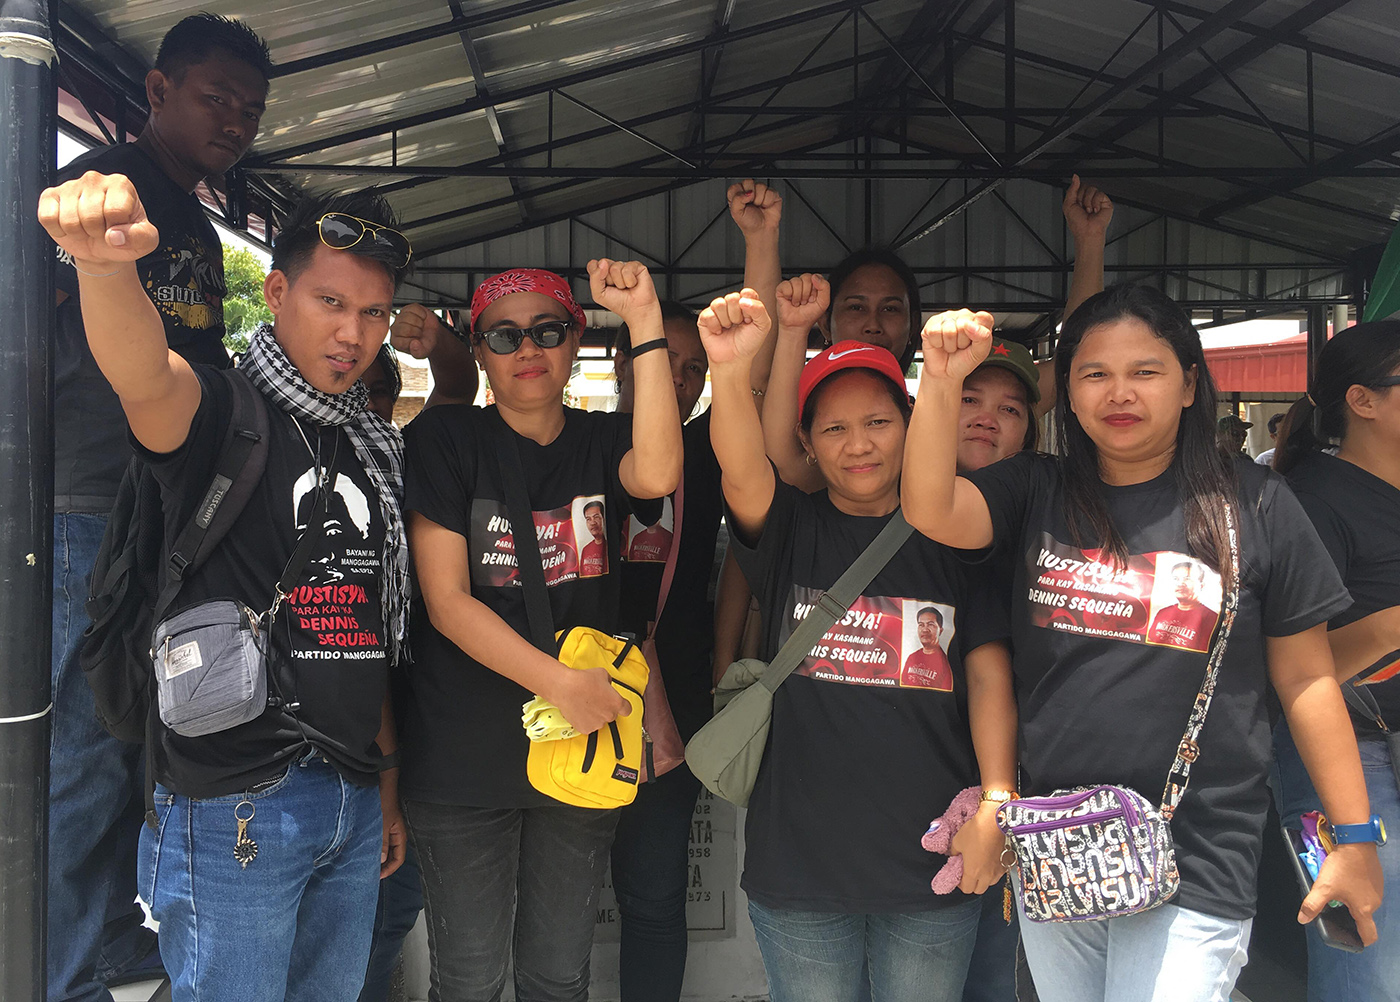 FIGHT FOR RIGHTS. Representatives of Samahang Mangagawang Nagkakaisa sa Jisoo raise their arms with clenched fists as they pledge to continue fighting for their rights after the funeral march held for Ka Dennis Sequeña on June 12, 2019. Photo by Stanley Triston Guevarra/Rappler